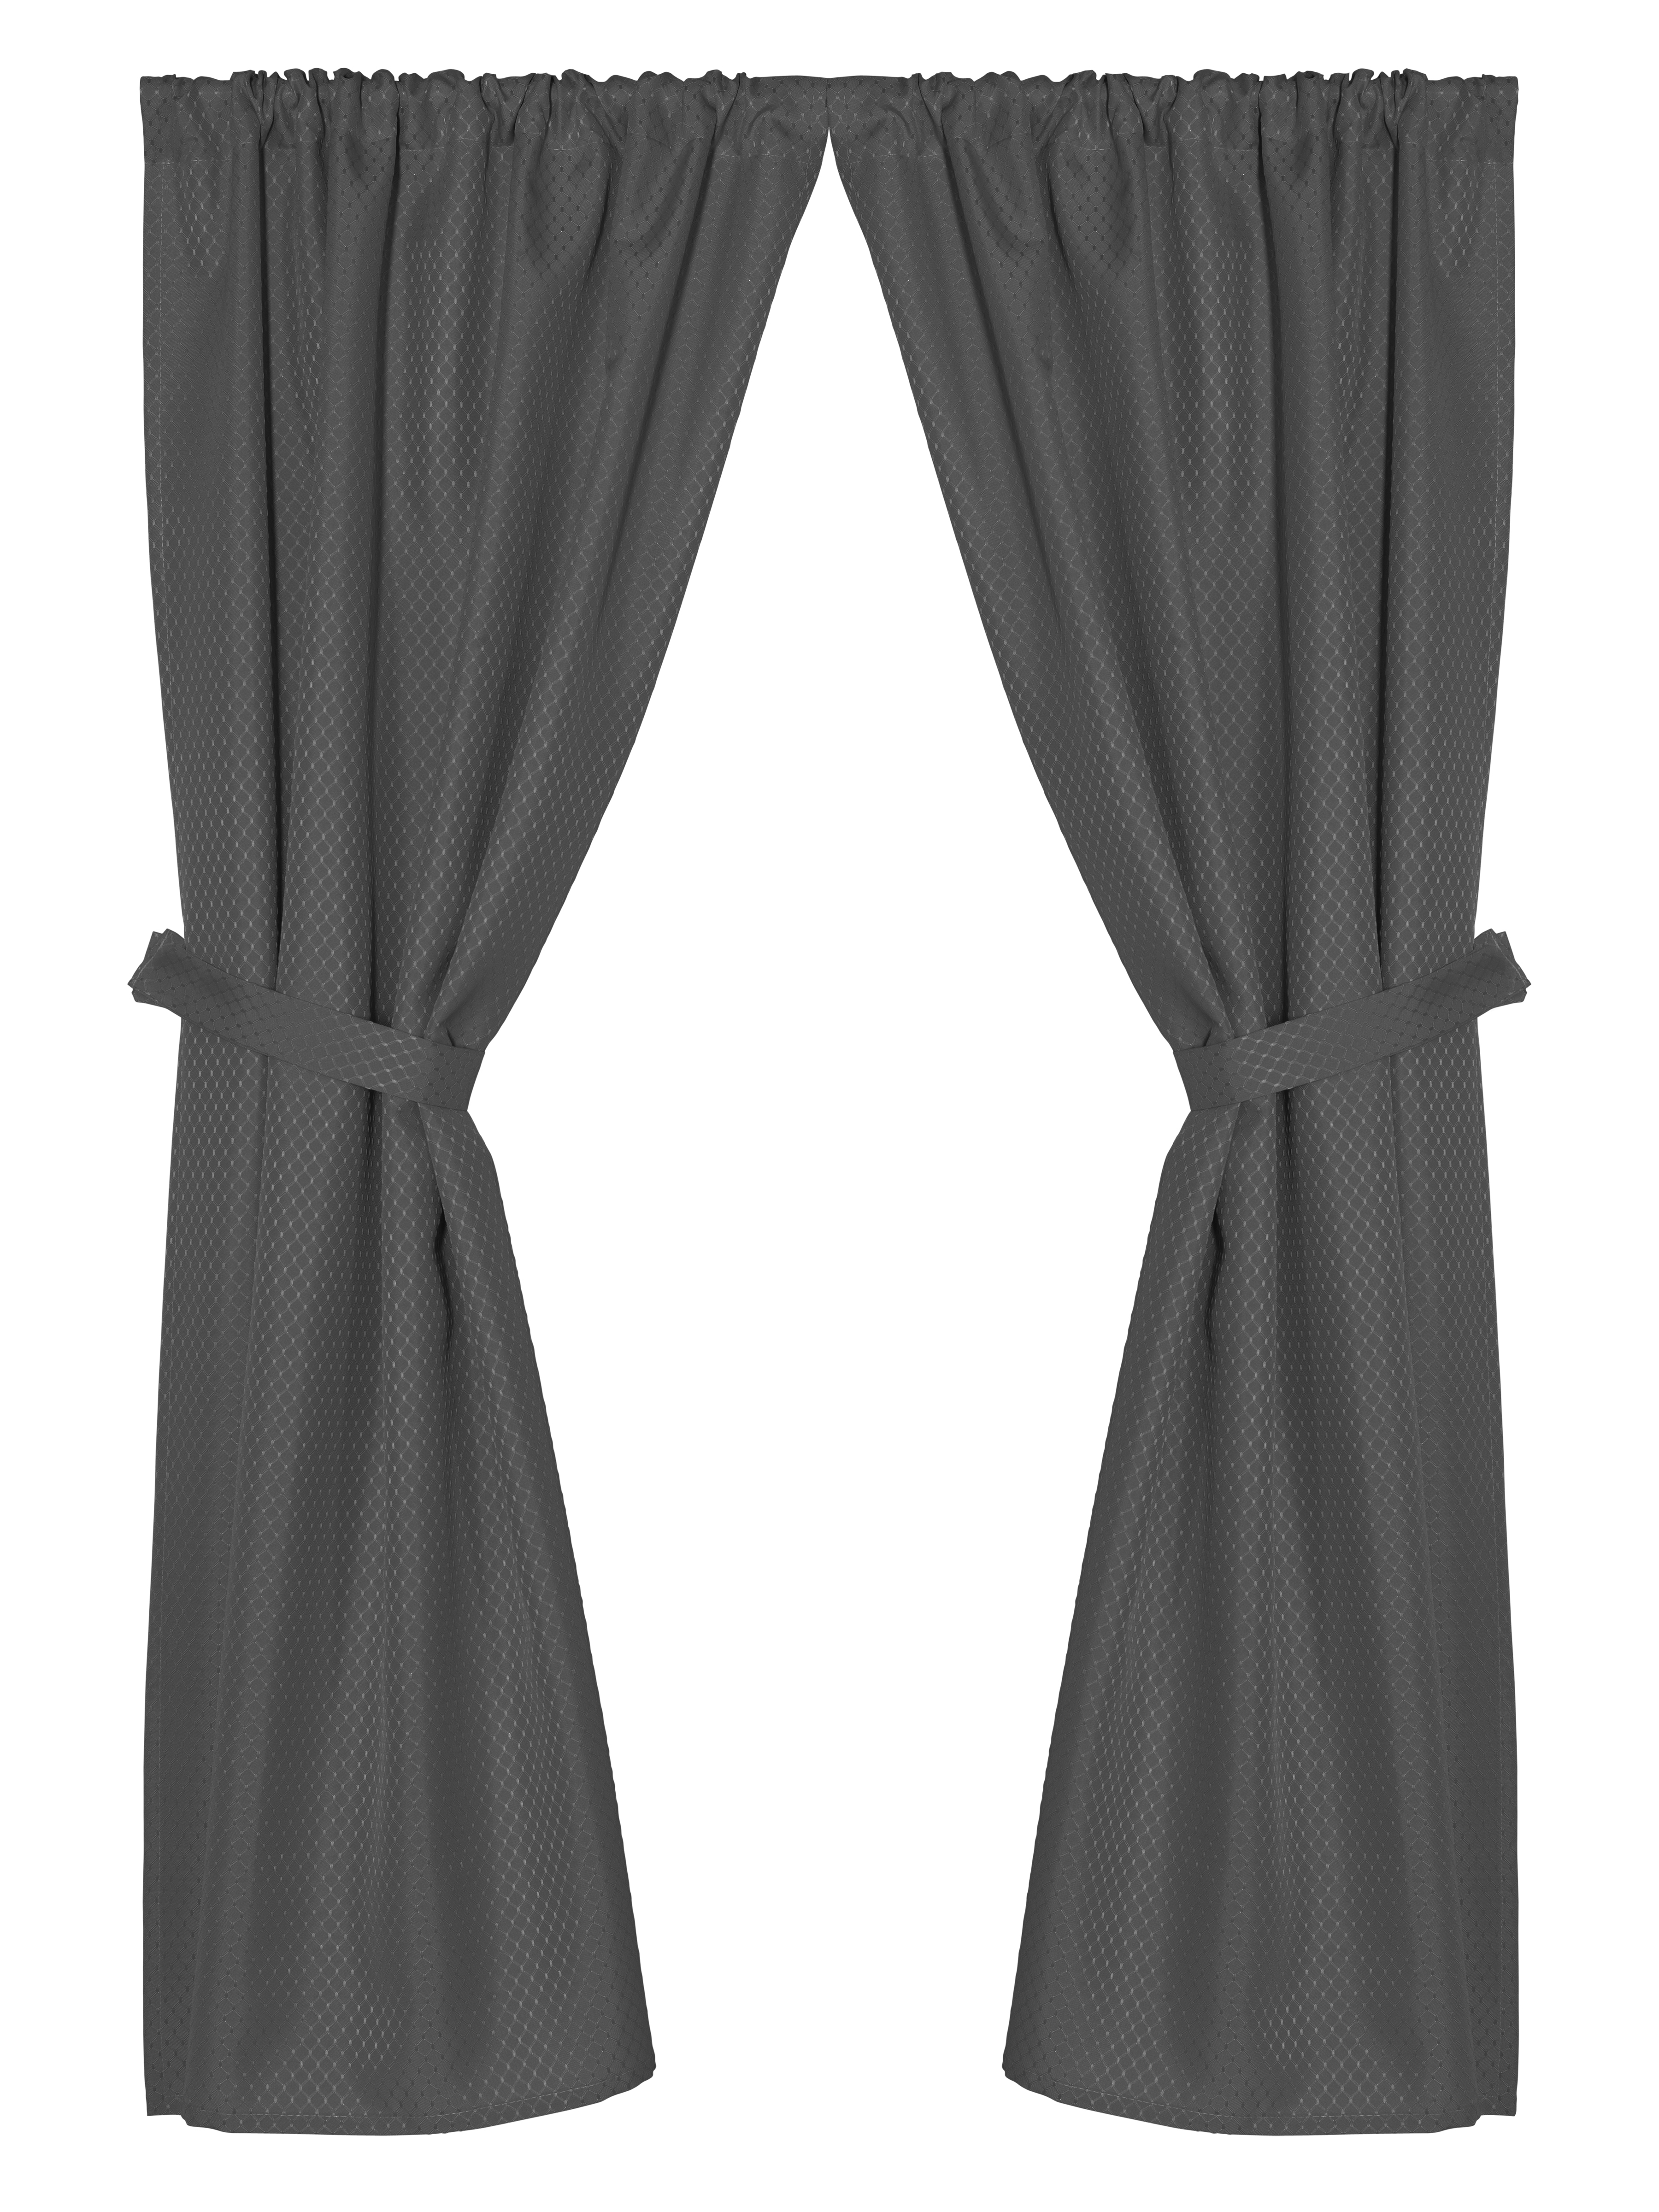 """Grace"""" Jacquard Bathroom Window Curtain In Black – Walmart For Classic Hotel Quality Water Resistant Fabric Curtains Set With Tiebacks (View 13 of 20)"""